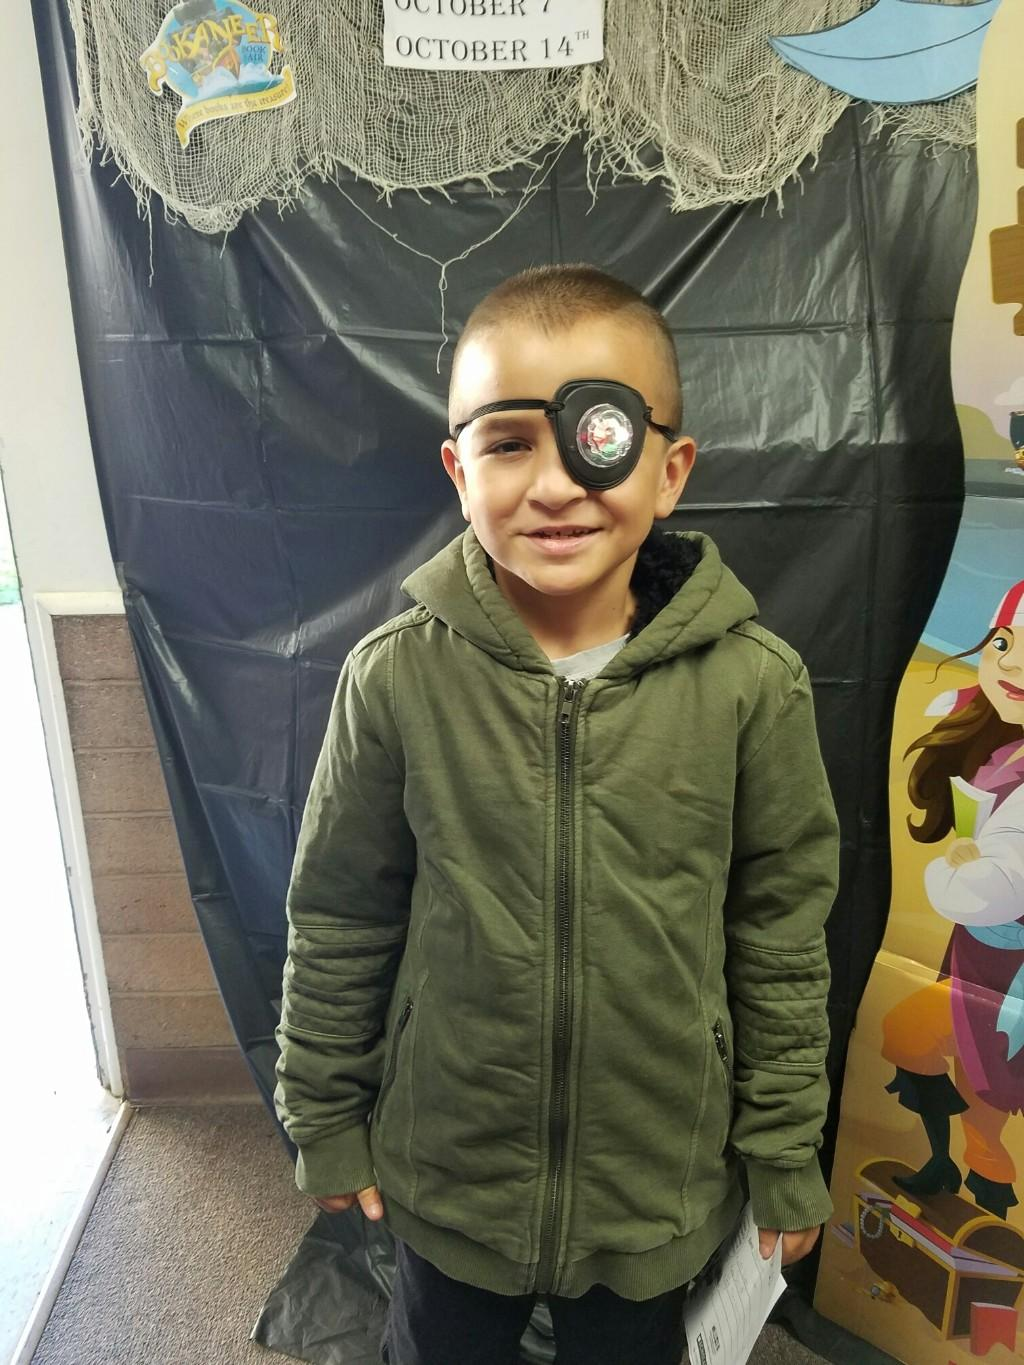 student dressed as pirates at bookfair